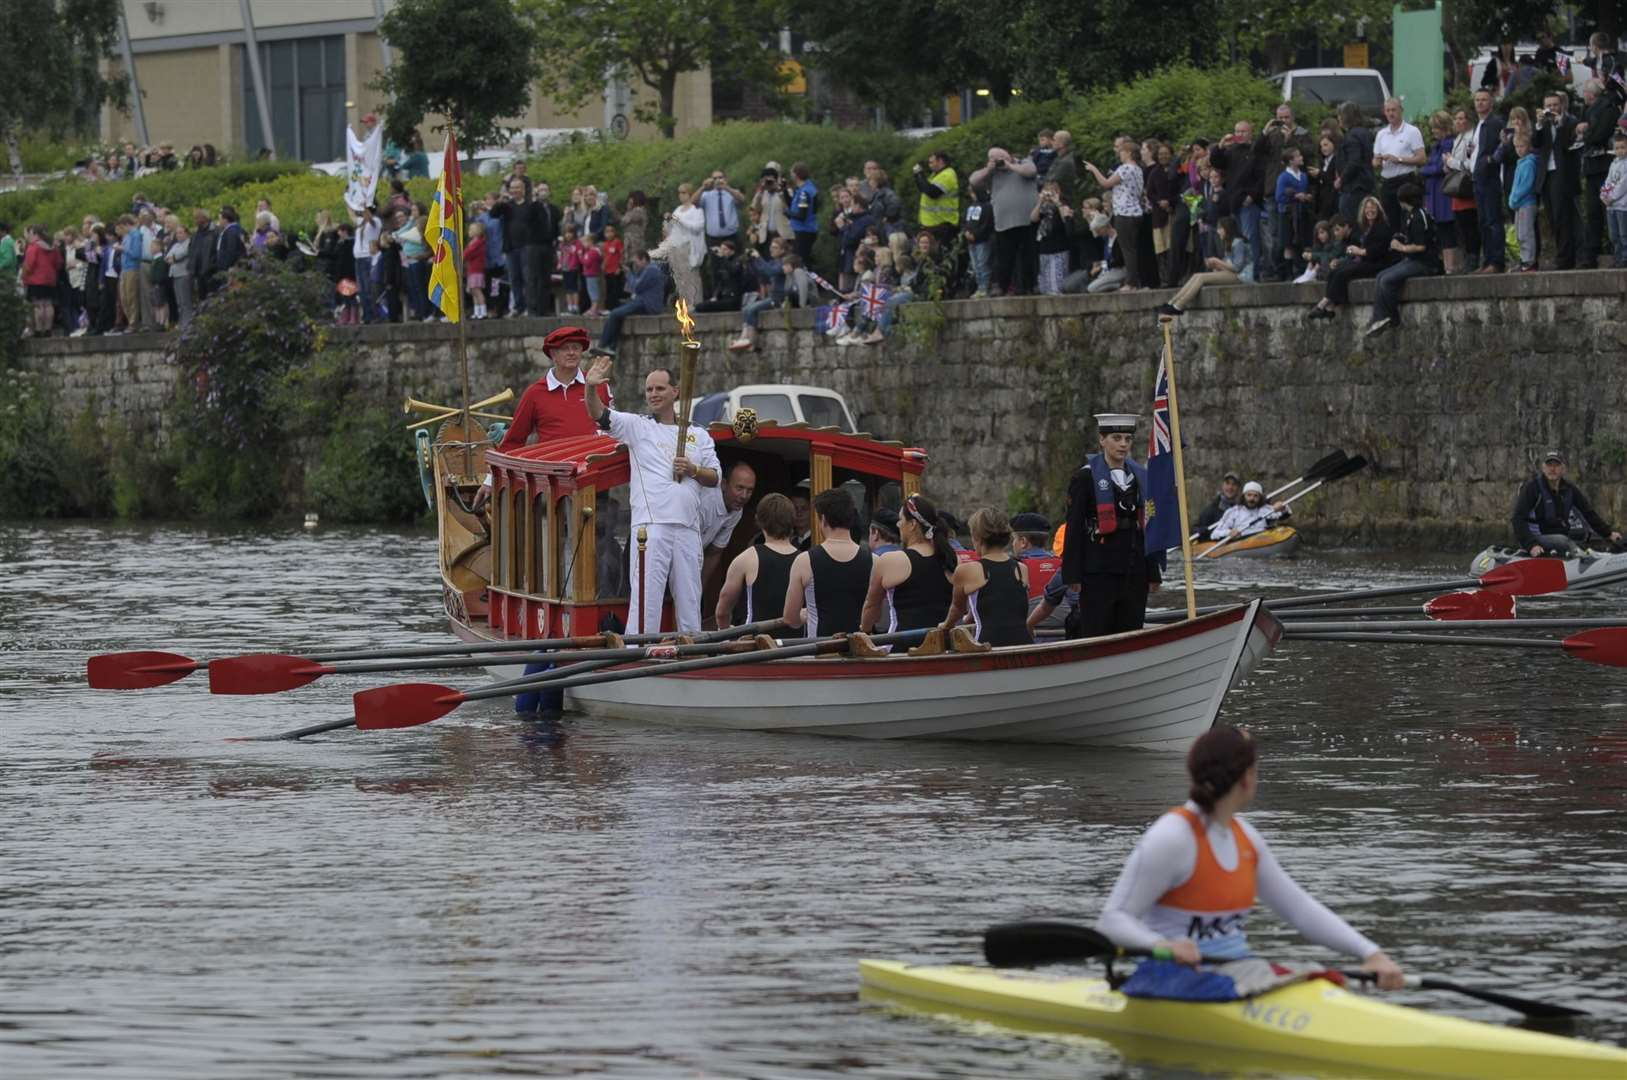 David Boyle from Tonbridge with the torch on the River Medway at Maidstone